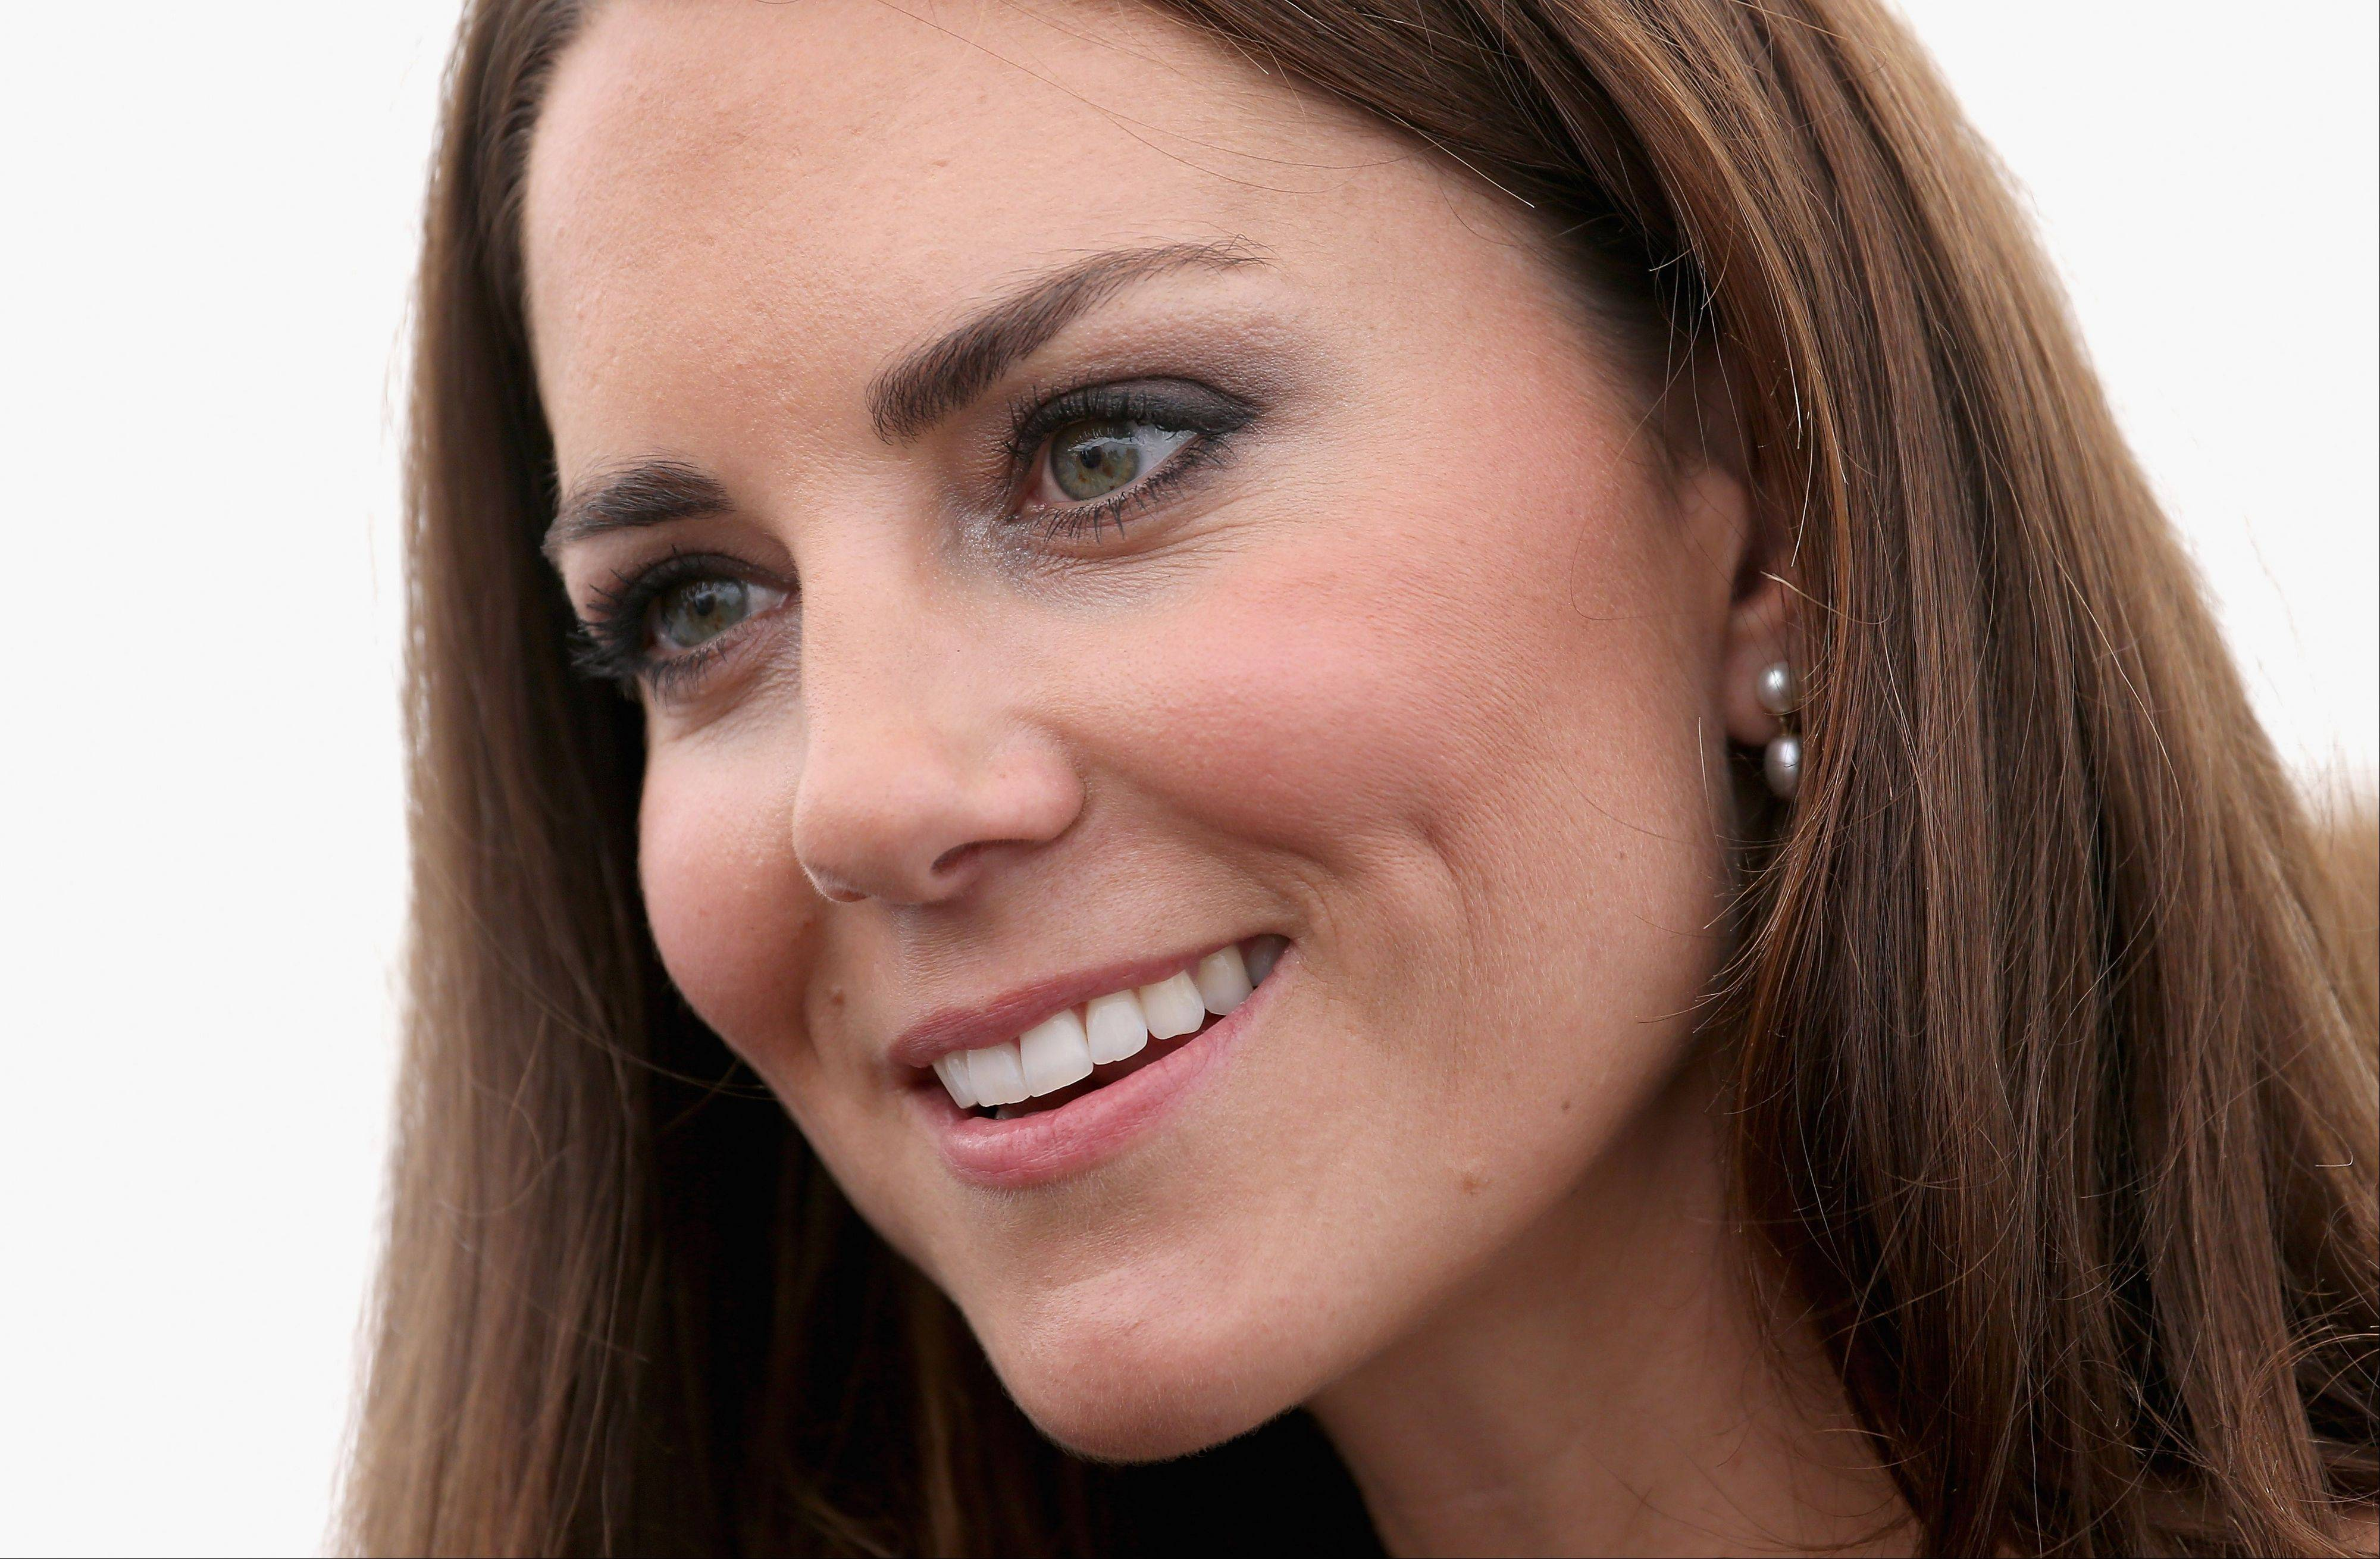 Britain's Kate Middleton, the Duchess of Cambridge, attends a reception as she visits Bacon's College in London. In Google's 12th annual roundup of global trending searches, Kate Middleton was ranked sixth.